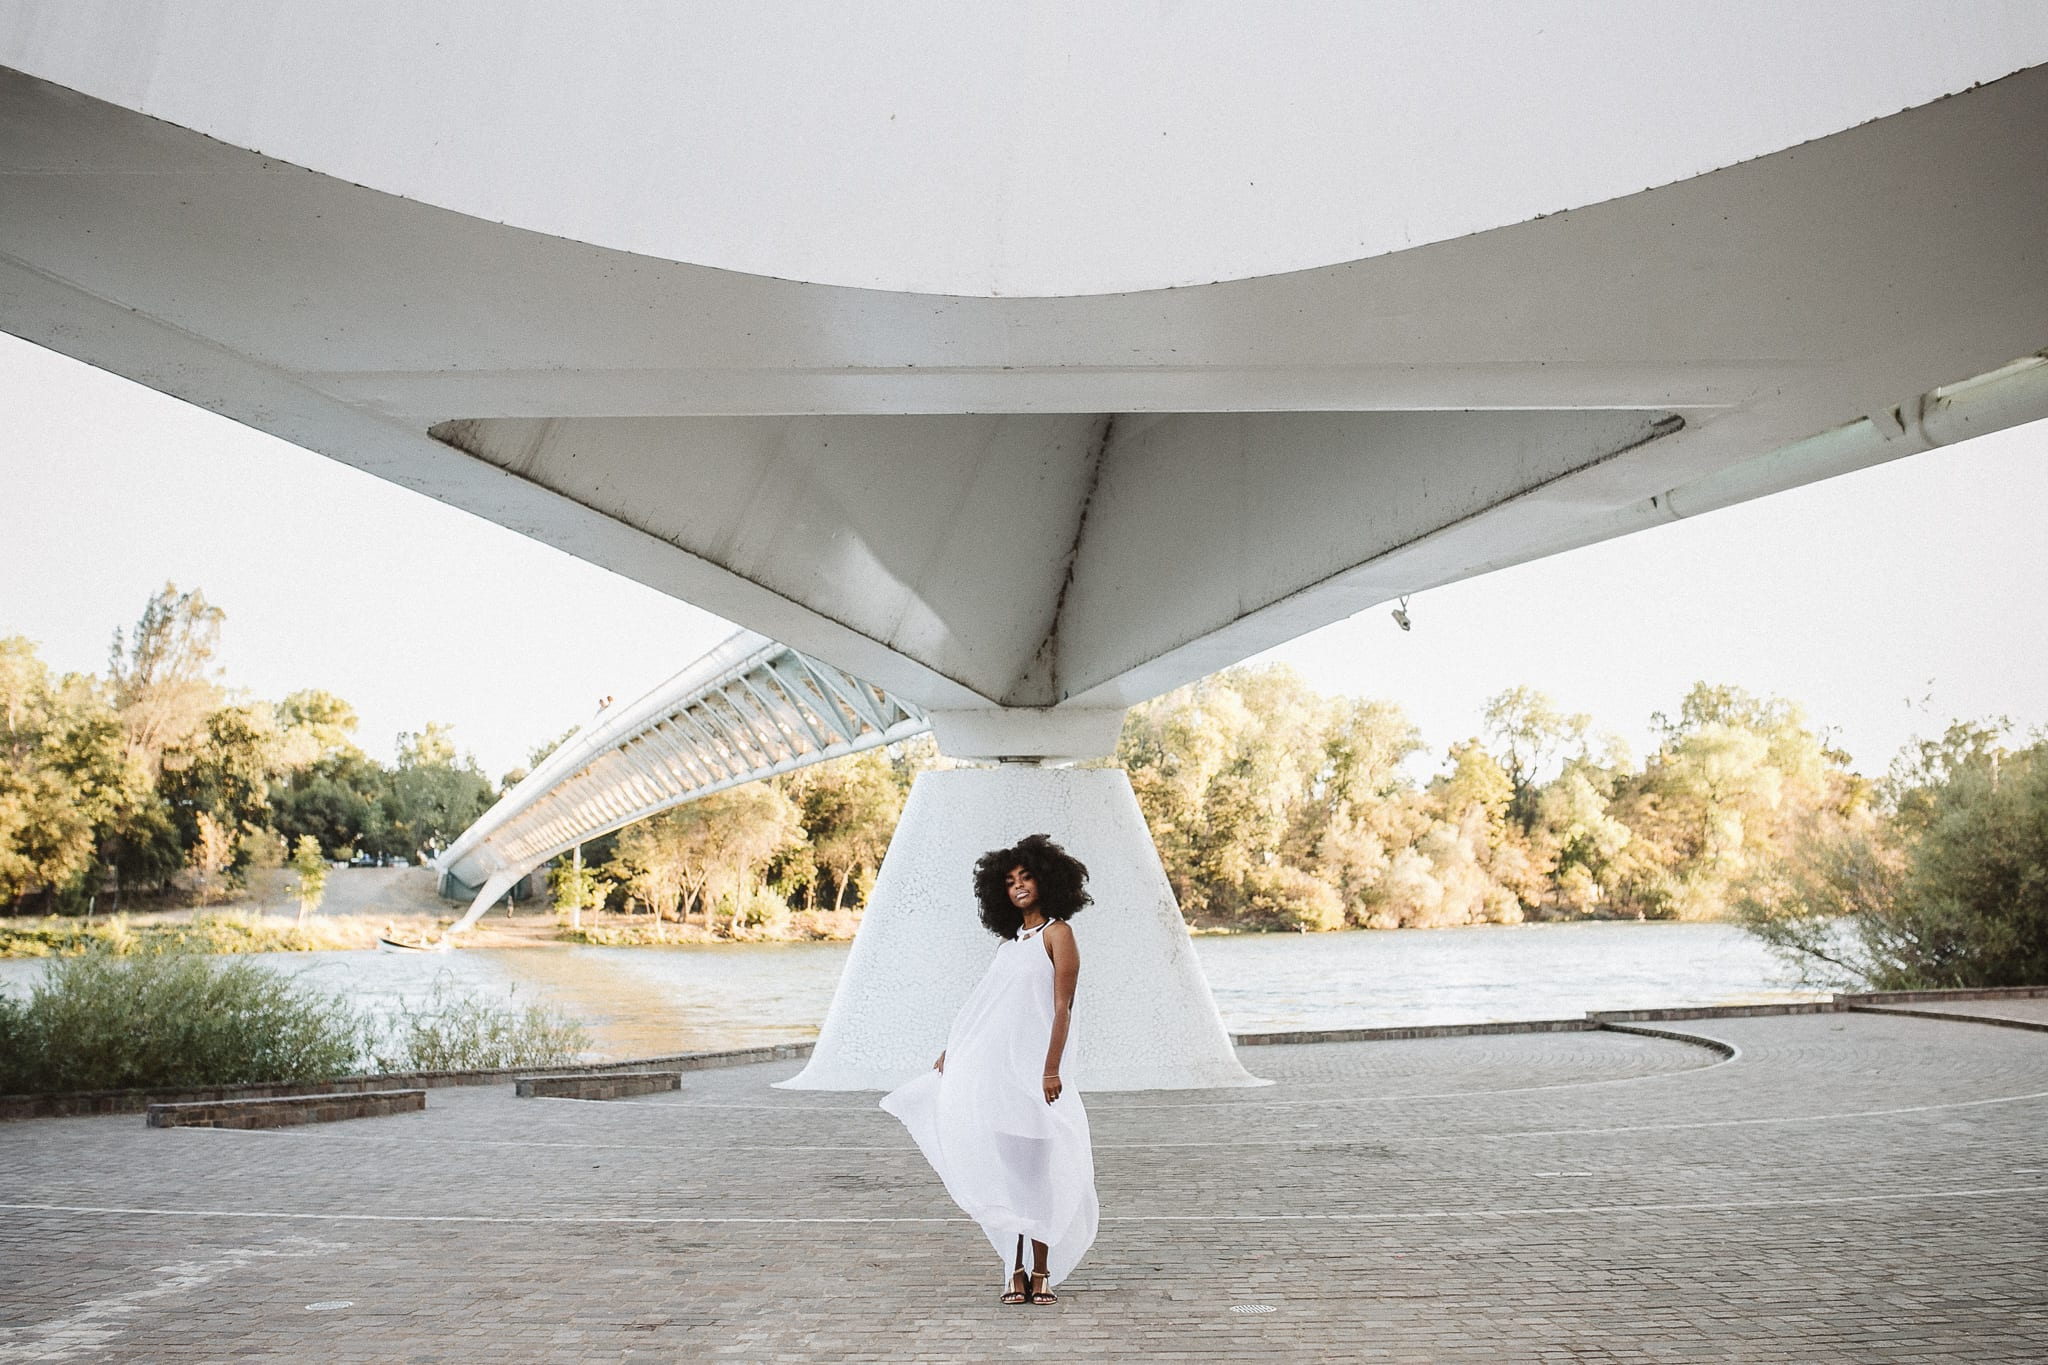 sundial-bridge-california-portrait-photographer-black-afro-queen-birthday-1